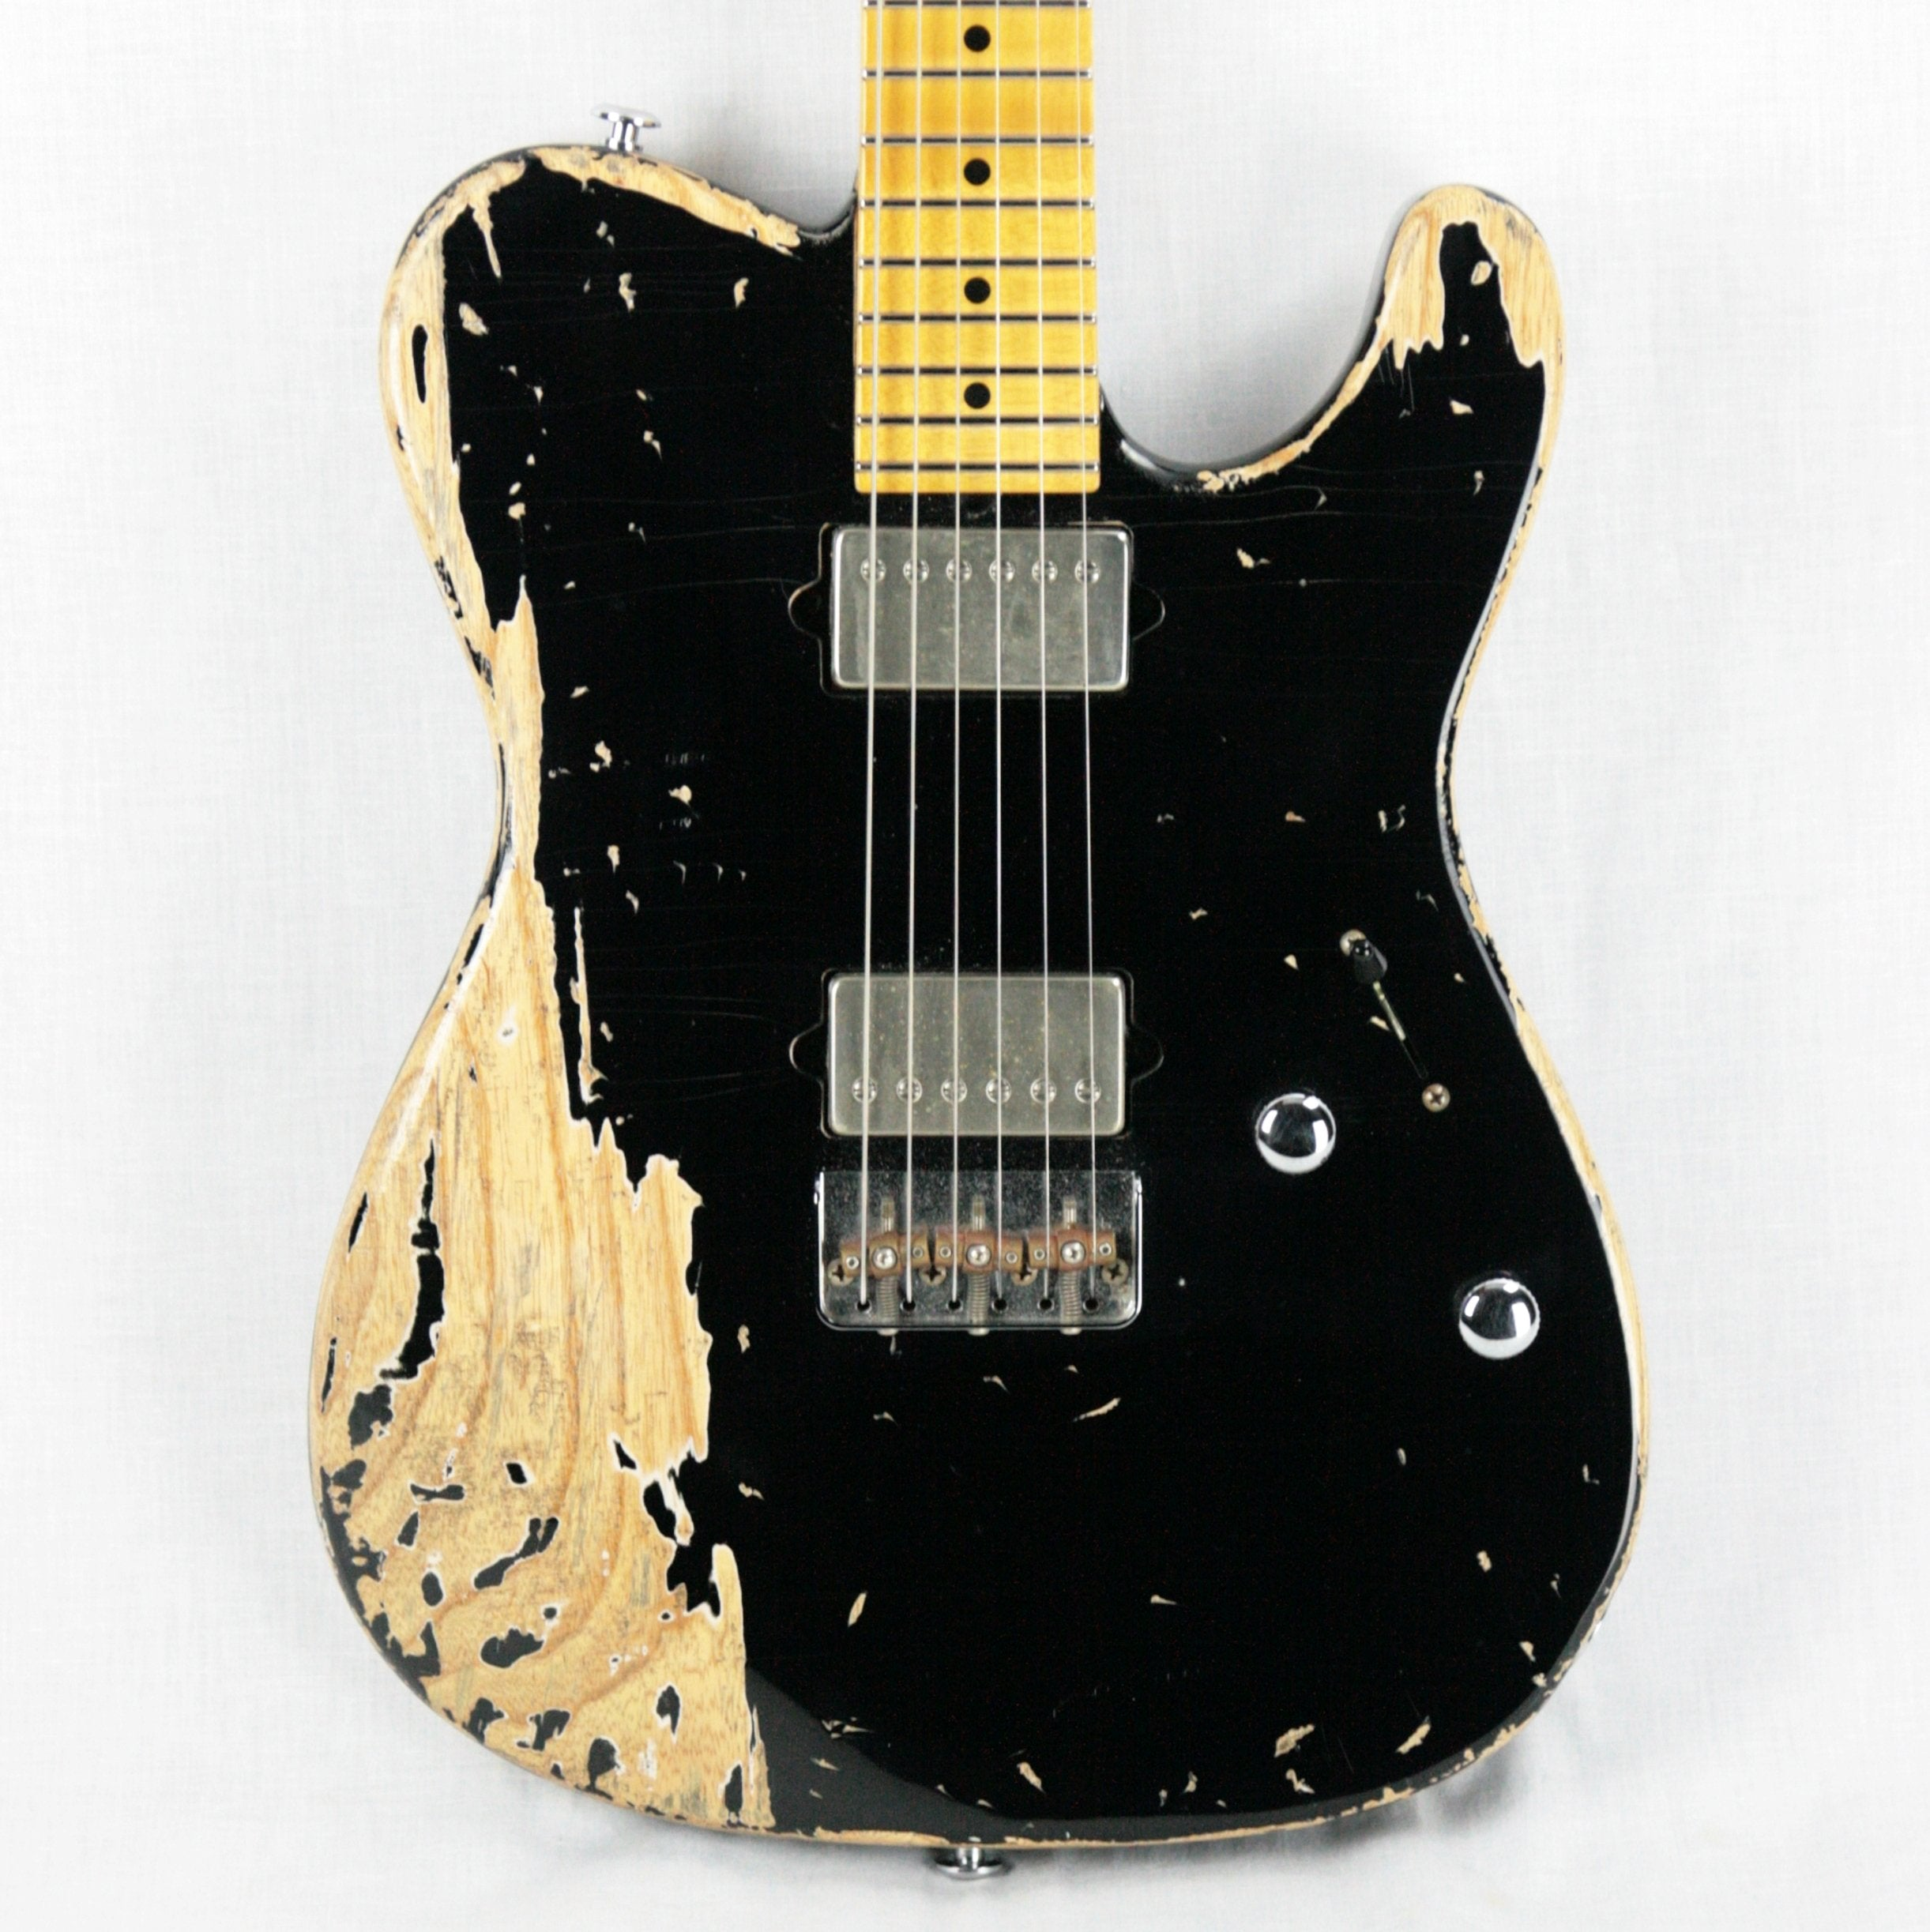 Suhr Classic T Antique Extra Heavy Aging Black Telecaster! Maple Neck Ash Body Humbucker Tele